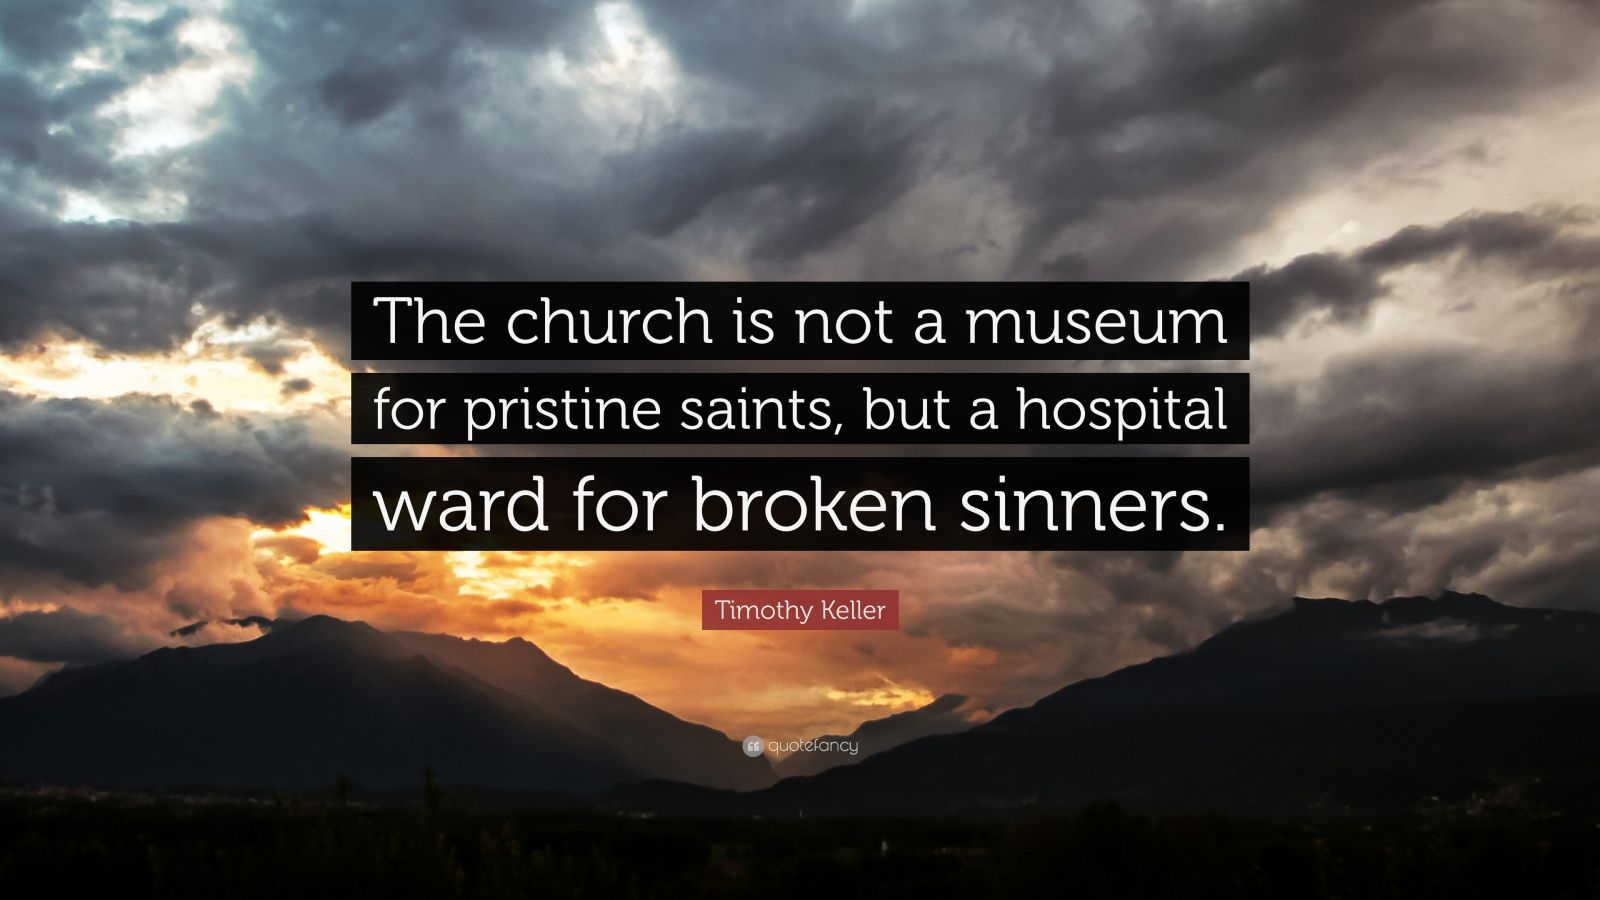 """Timothy Keller Quote: """"The church is not a museum for pristine saints, but a hospital ward for broken sinners."""""""